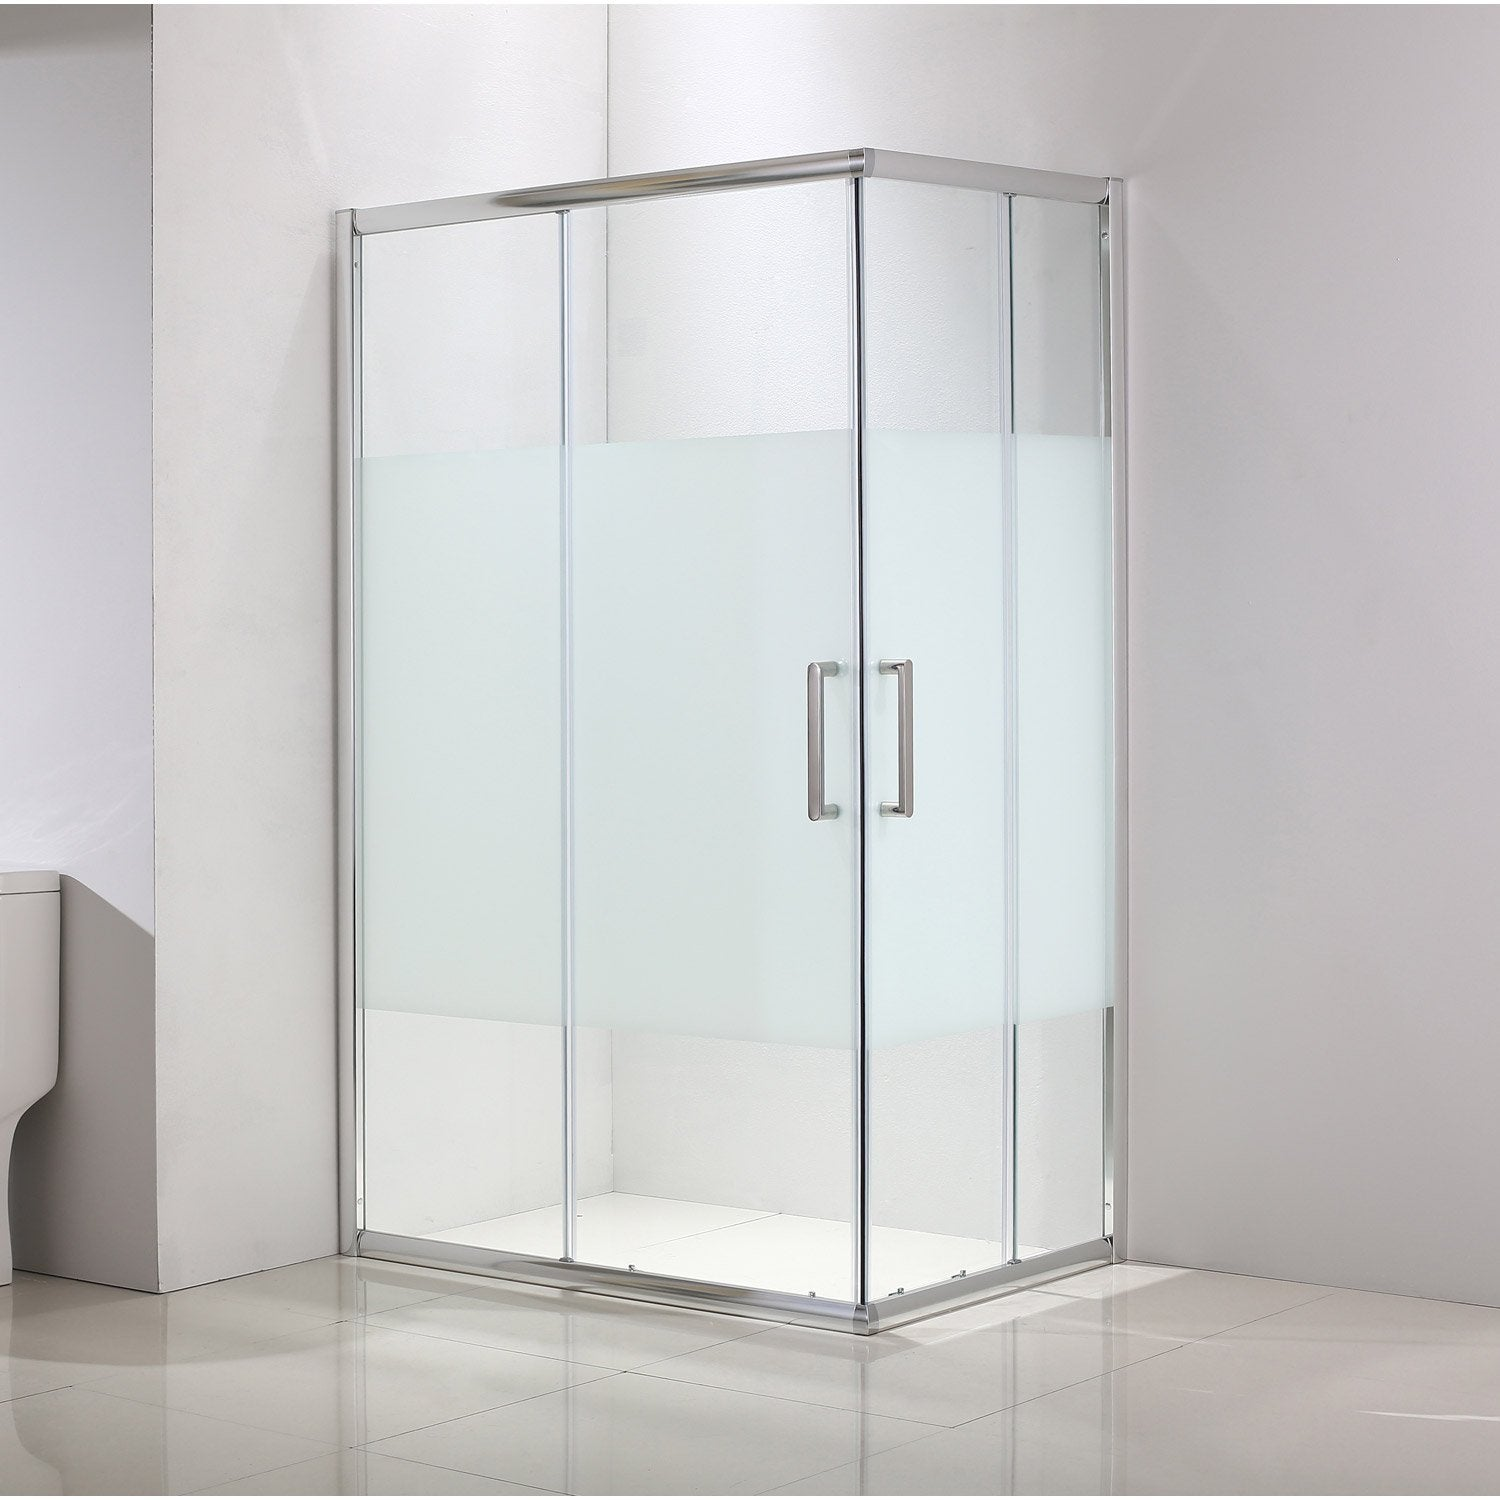 porte de douche coulissante angle rectangle 120 x 80 cm